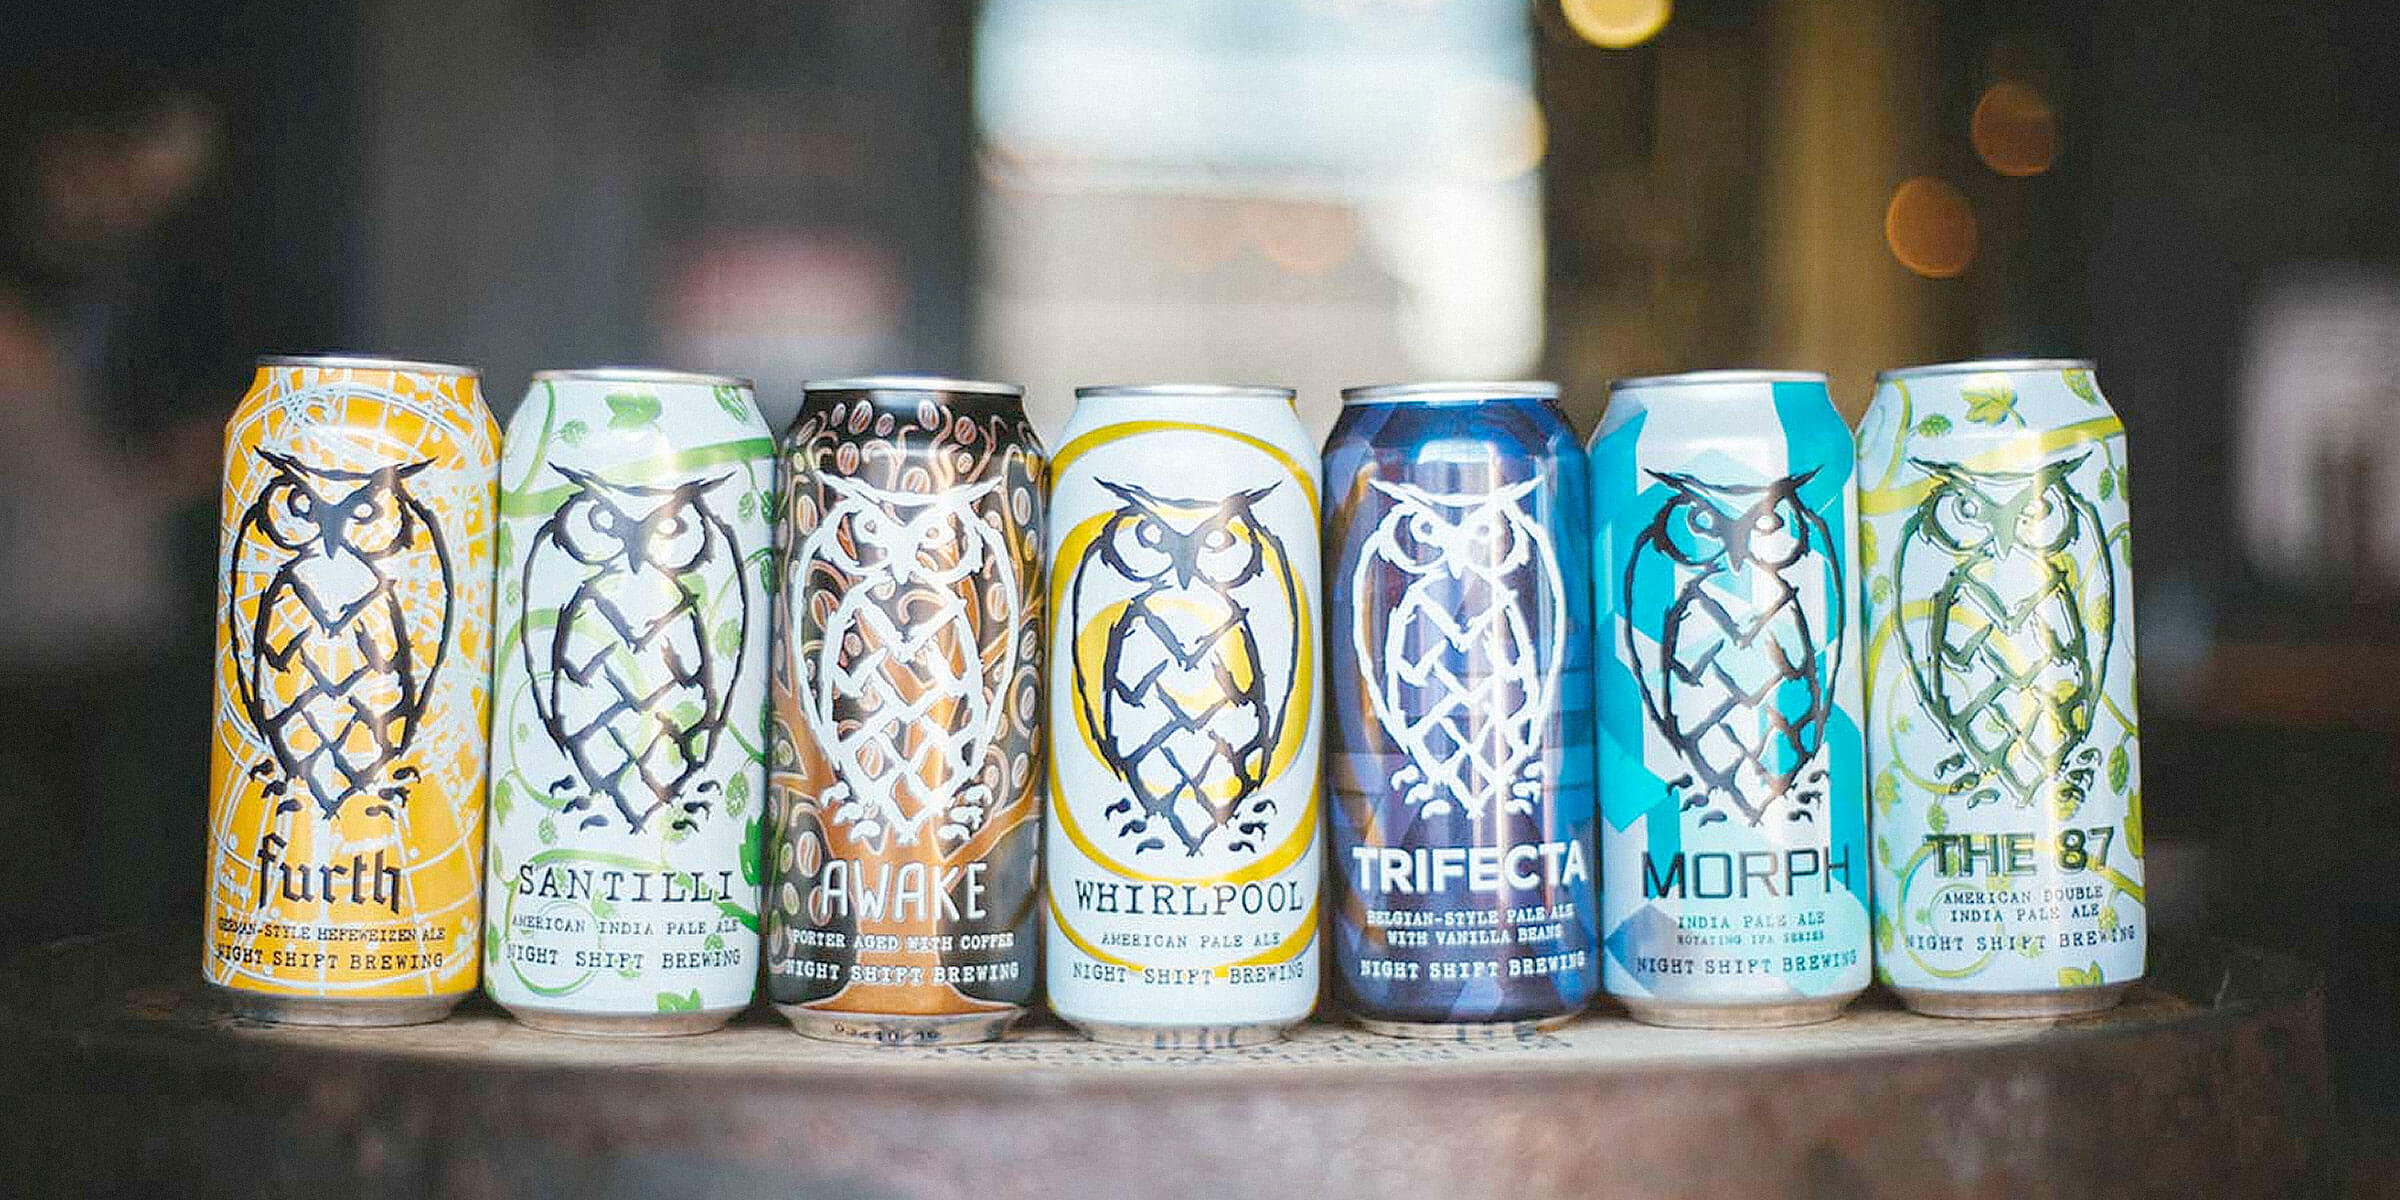 Lineup of canned beers offered by Night Shift Brewing